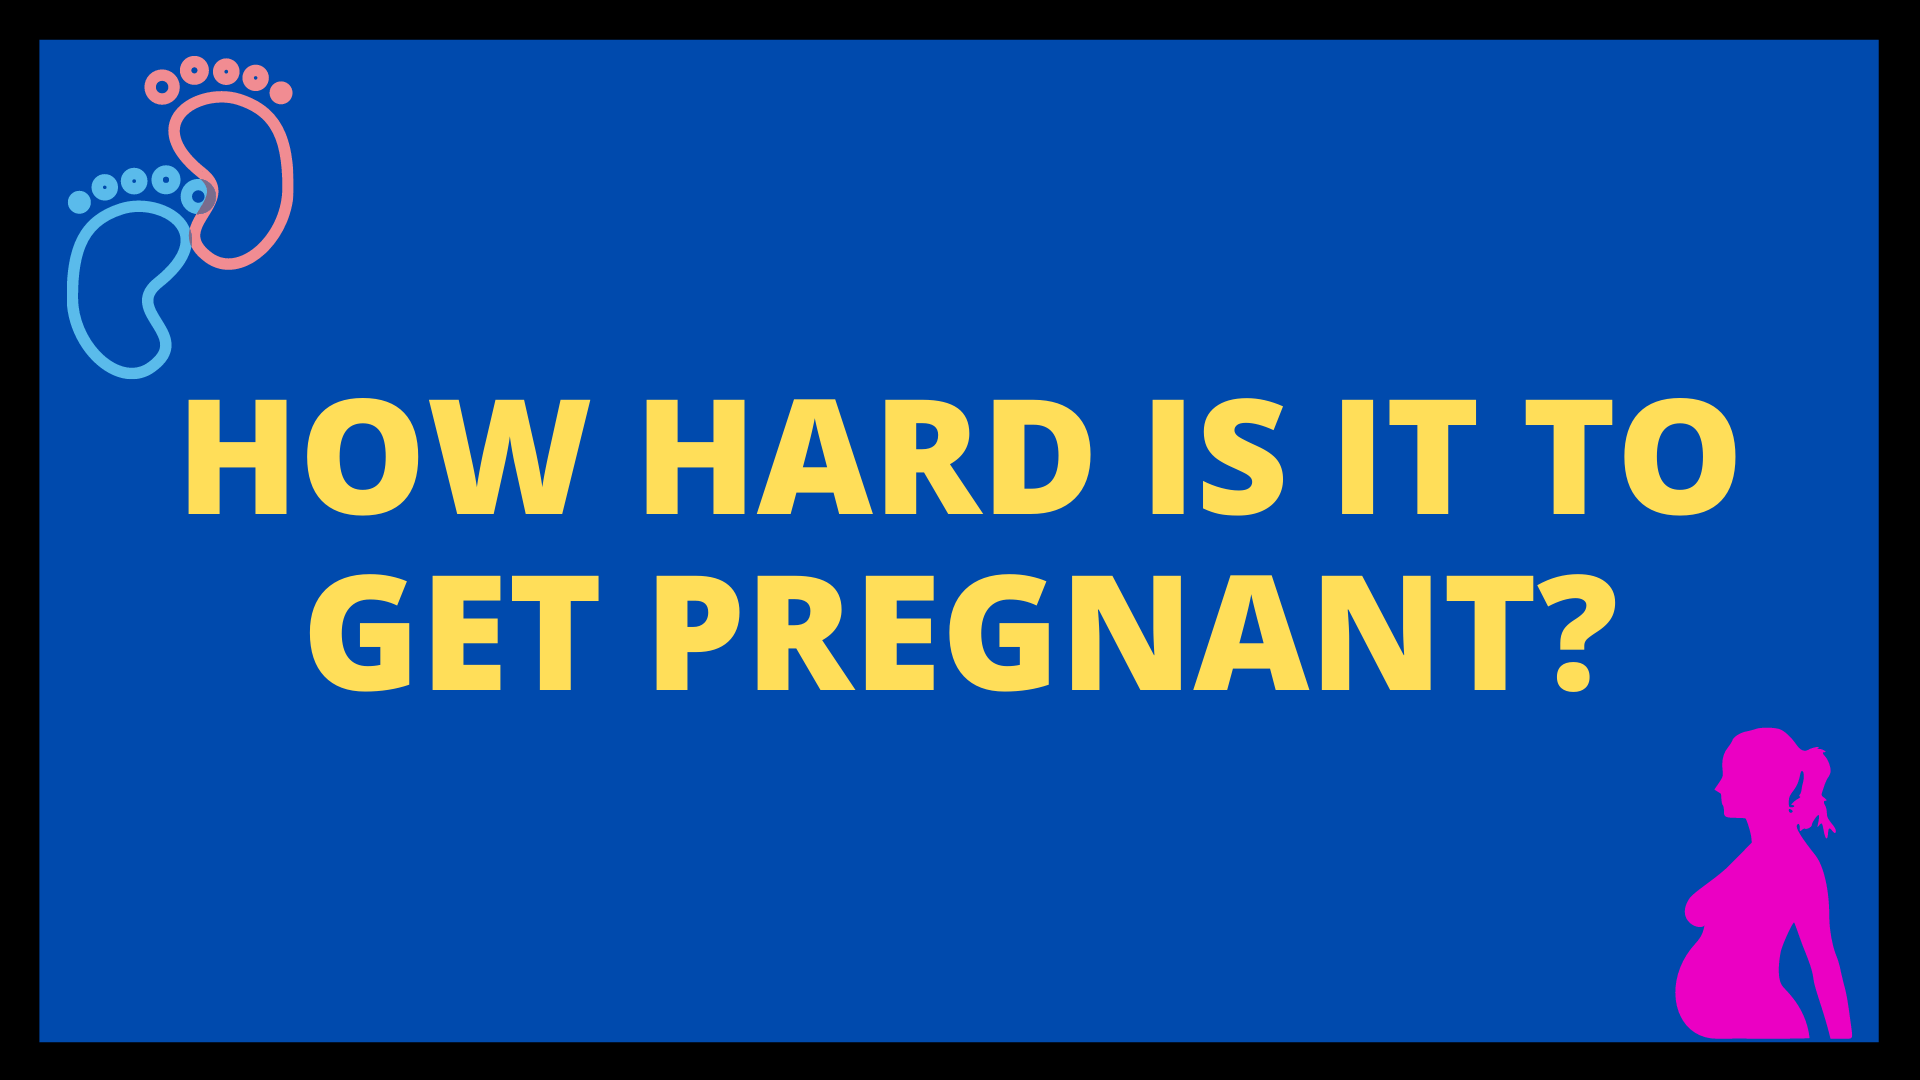 How Hard is it to Get Pregnant?